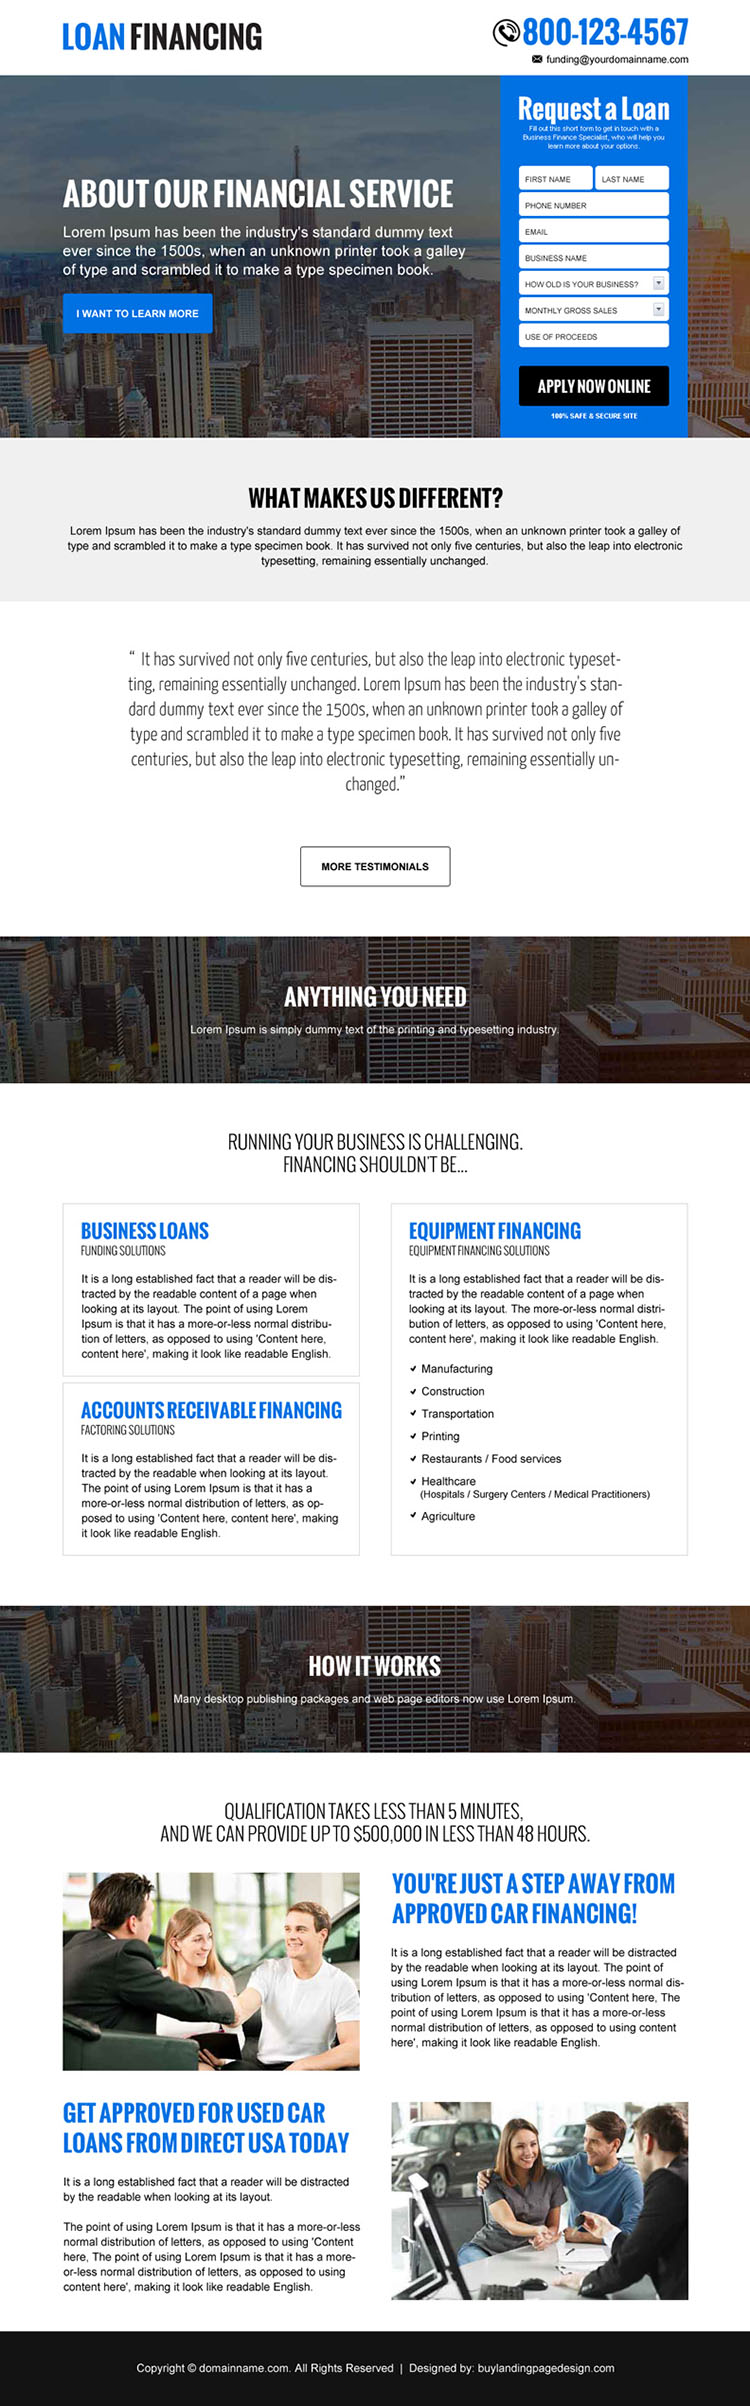 loan financing free quote responsive landing page design